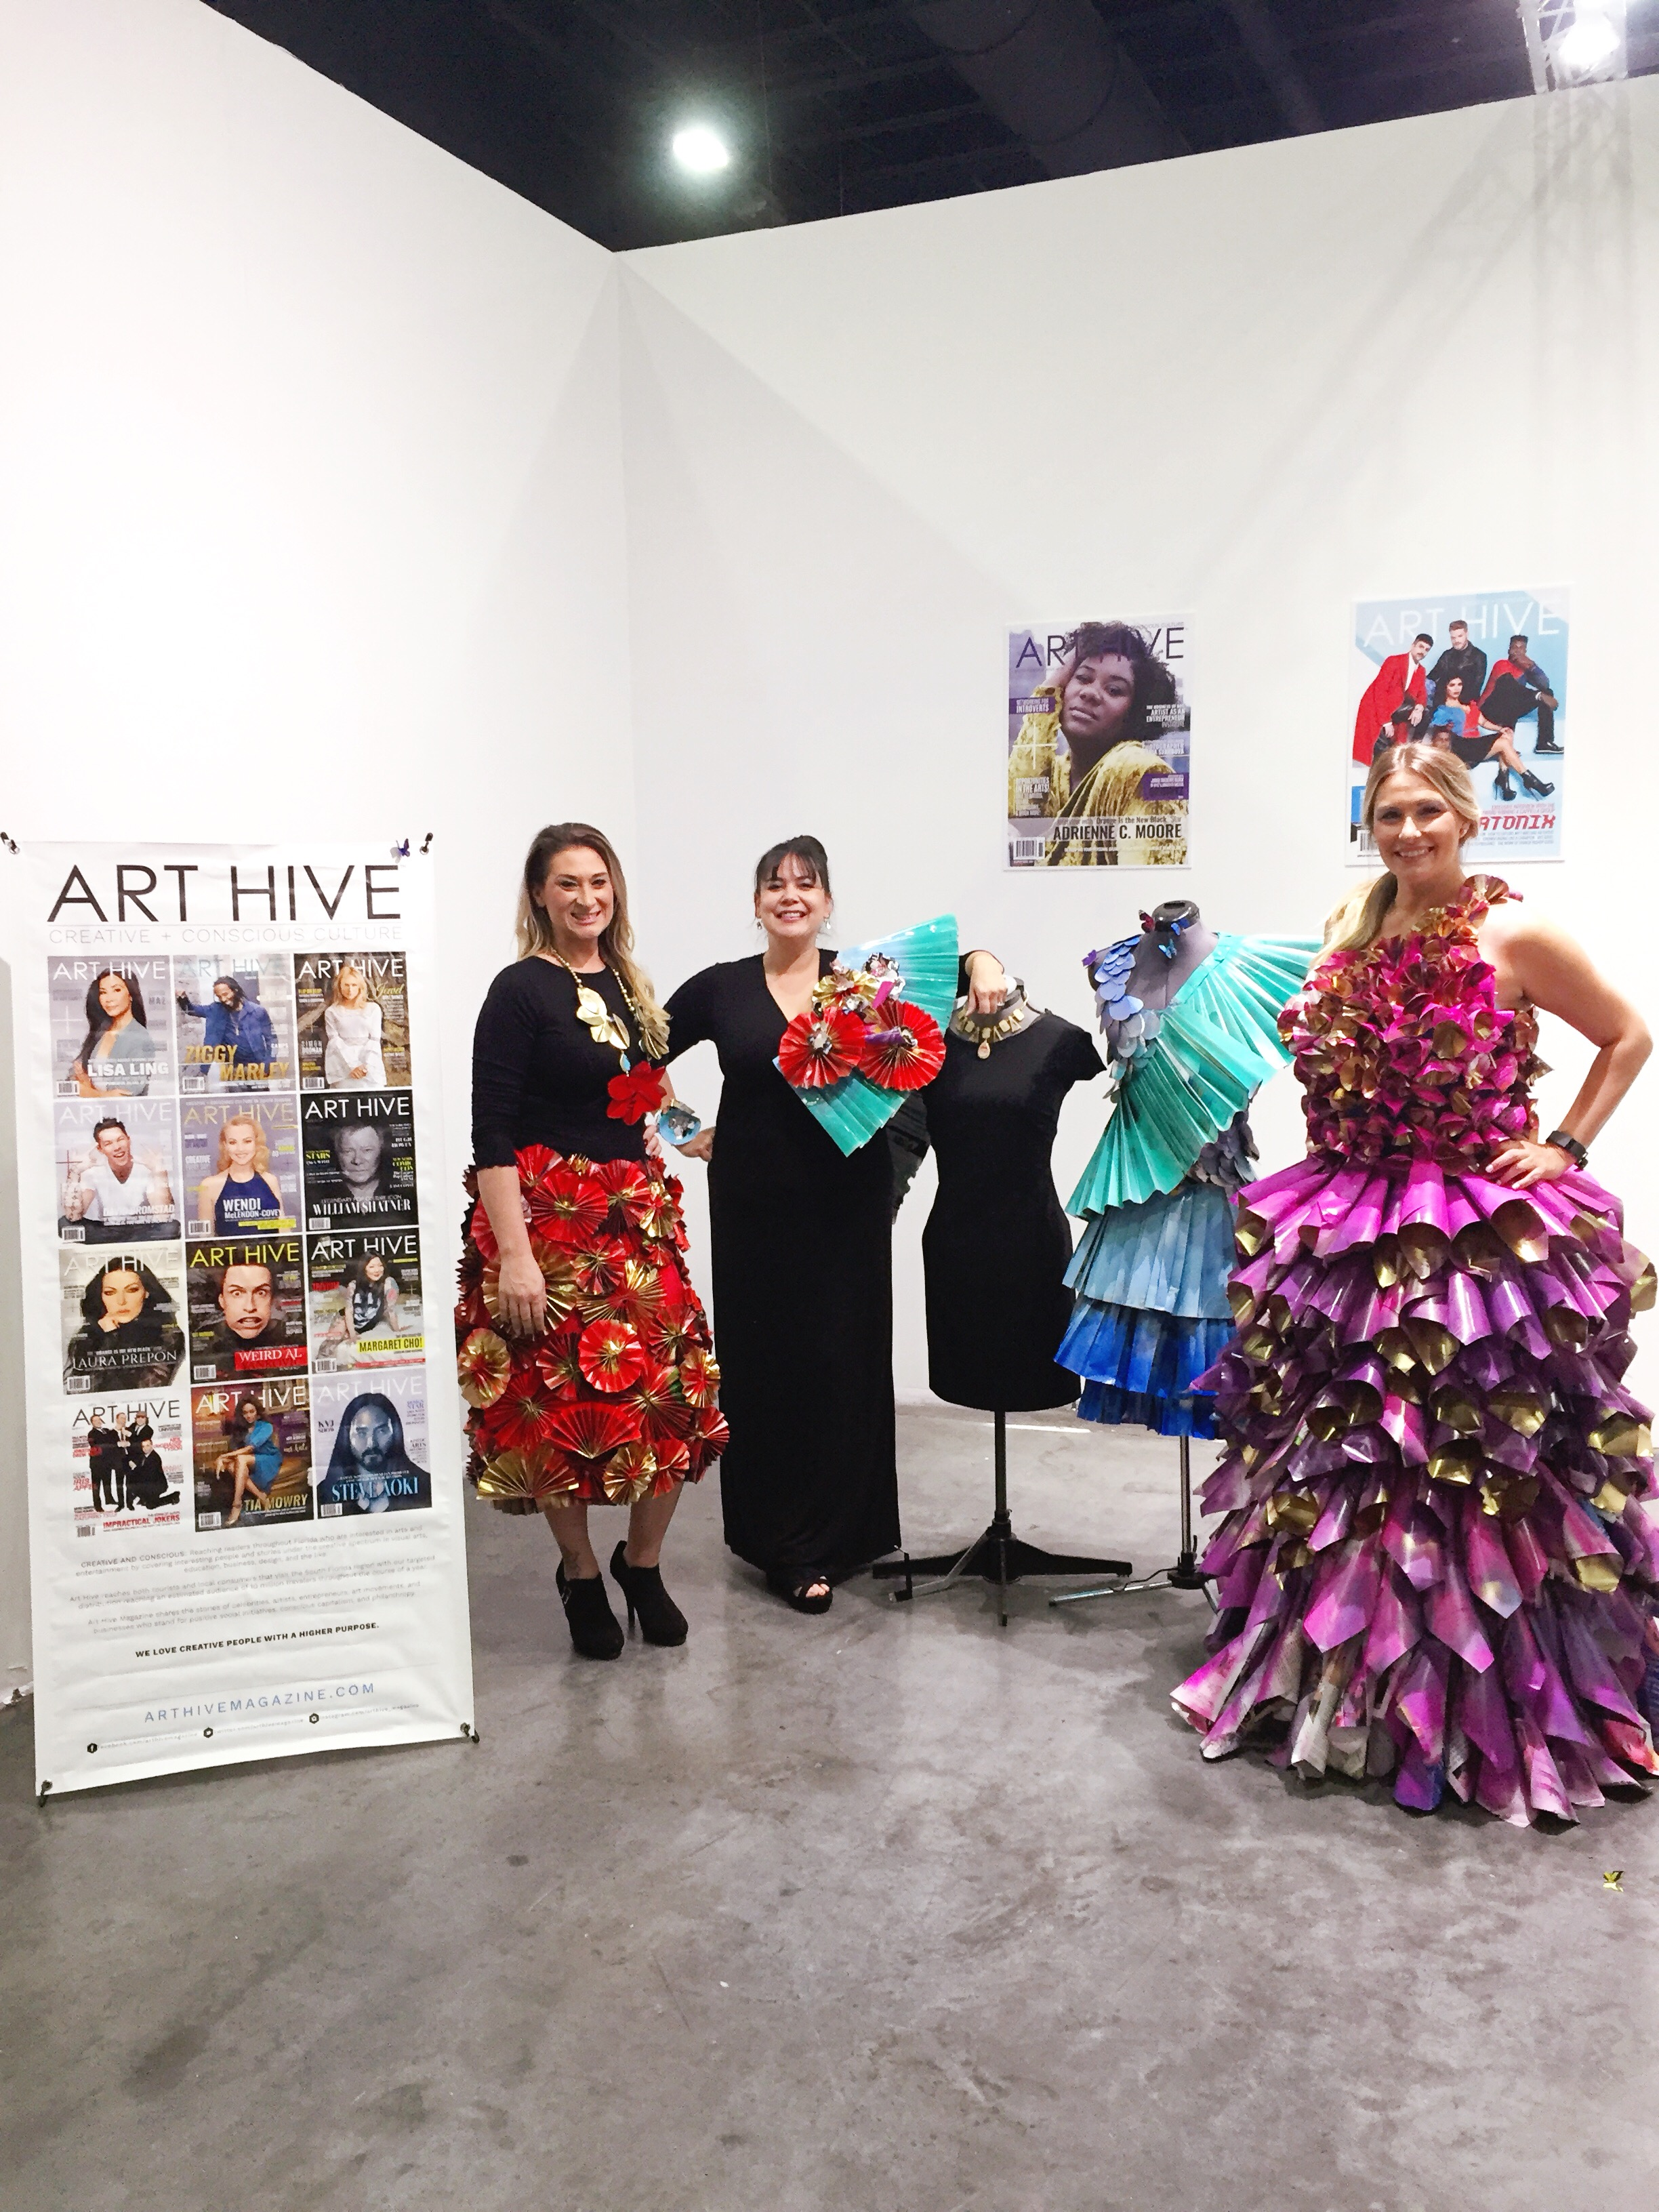 Art Hive Recycled Dress5.JPG